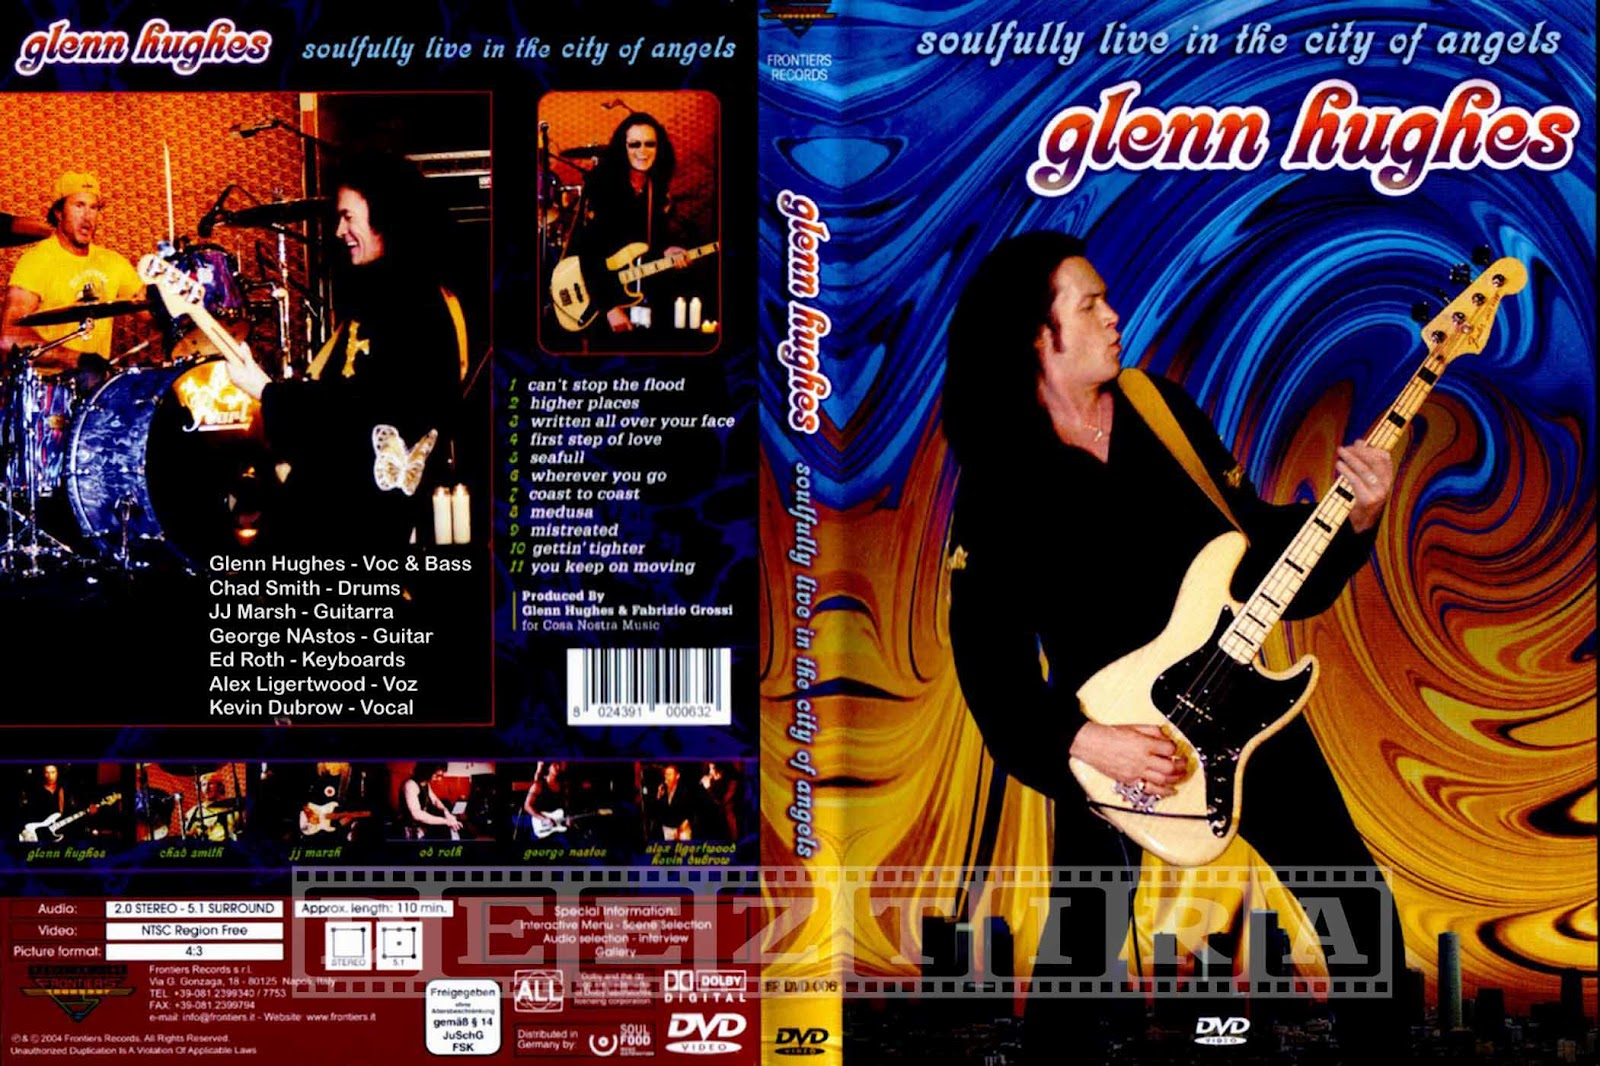 YOUDISCOLL: Glenn Hughes - Soulfully Live in the City of Angels (2004)